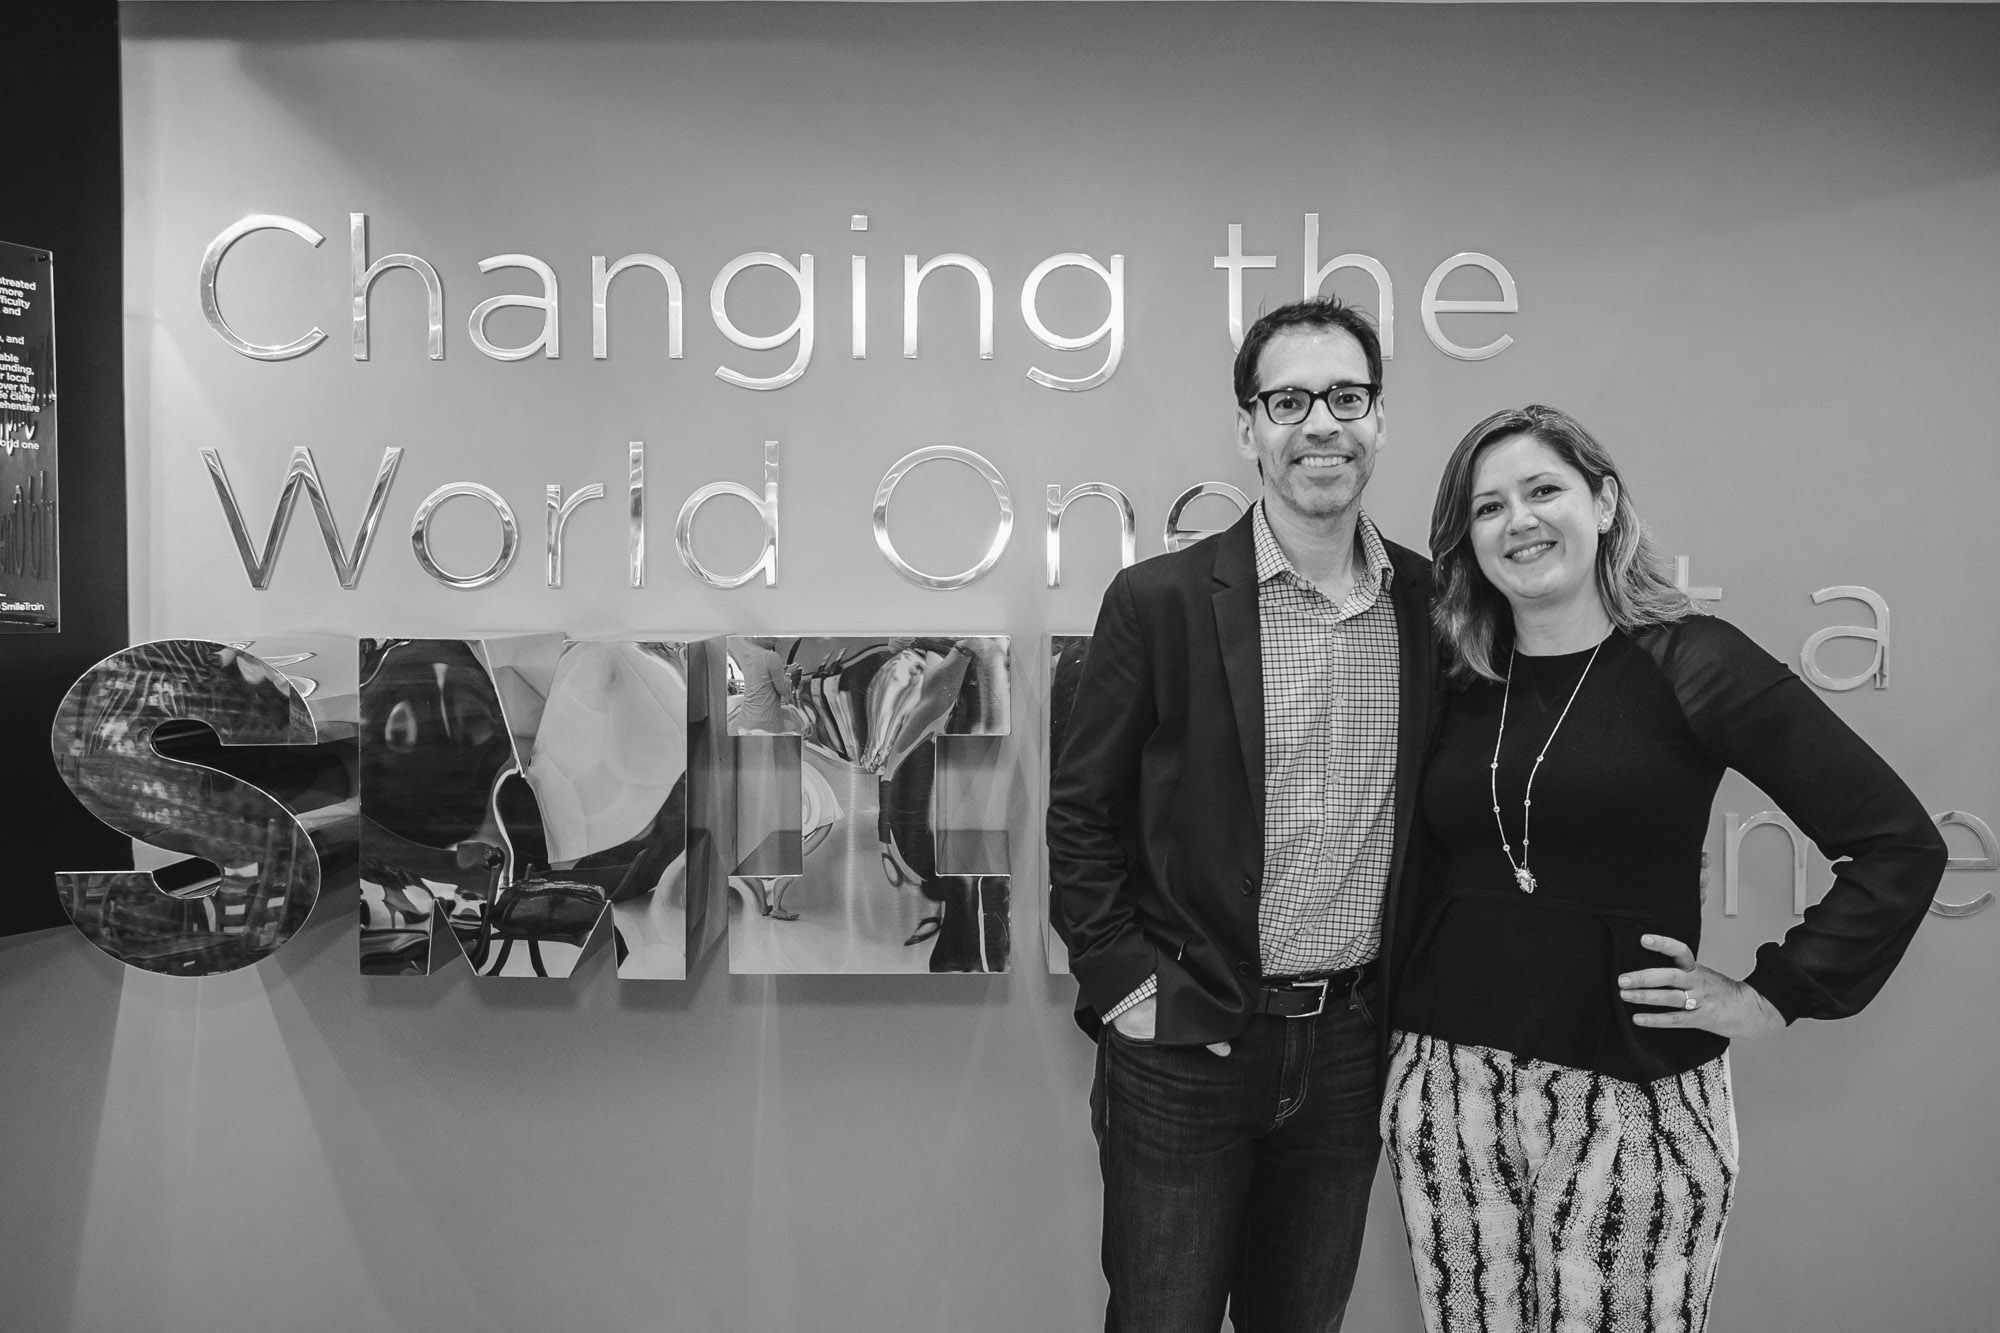 Two people standing in front of sign saying 'Changing the world one smile at a time'